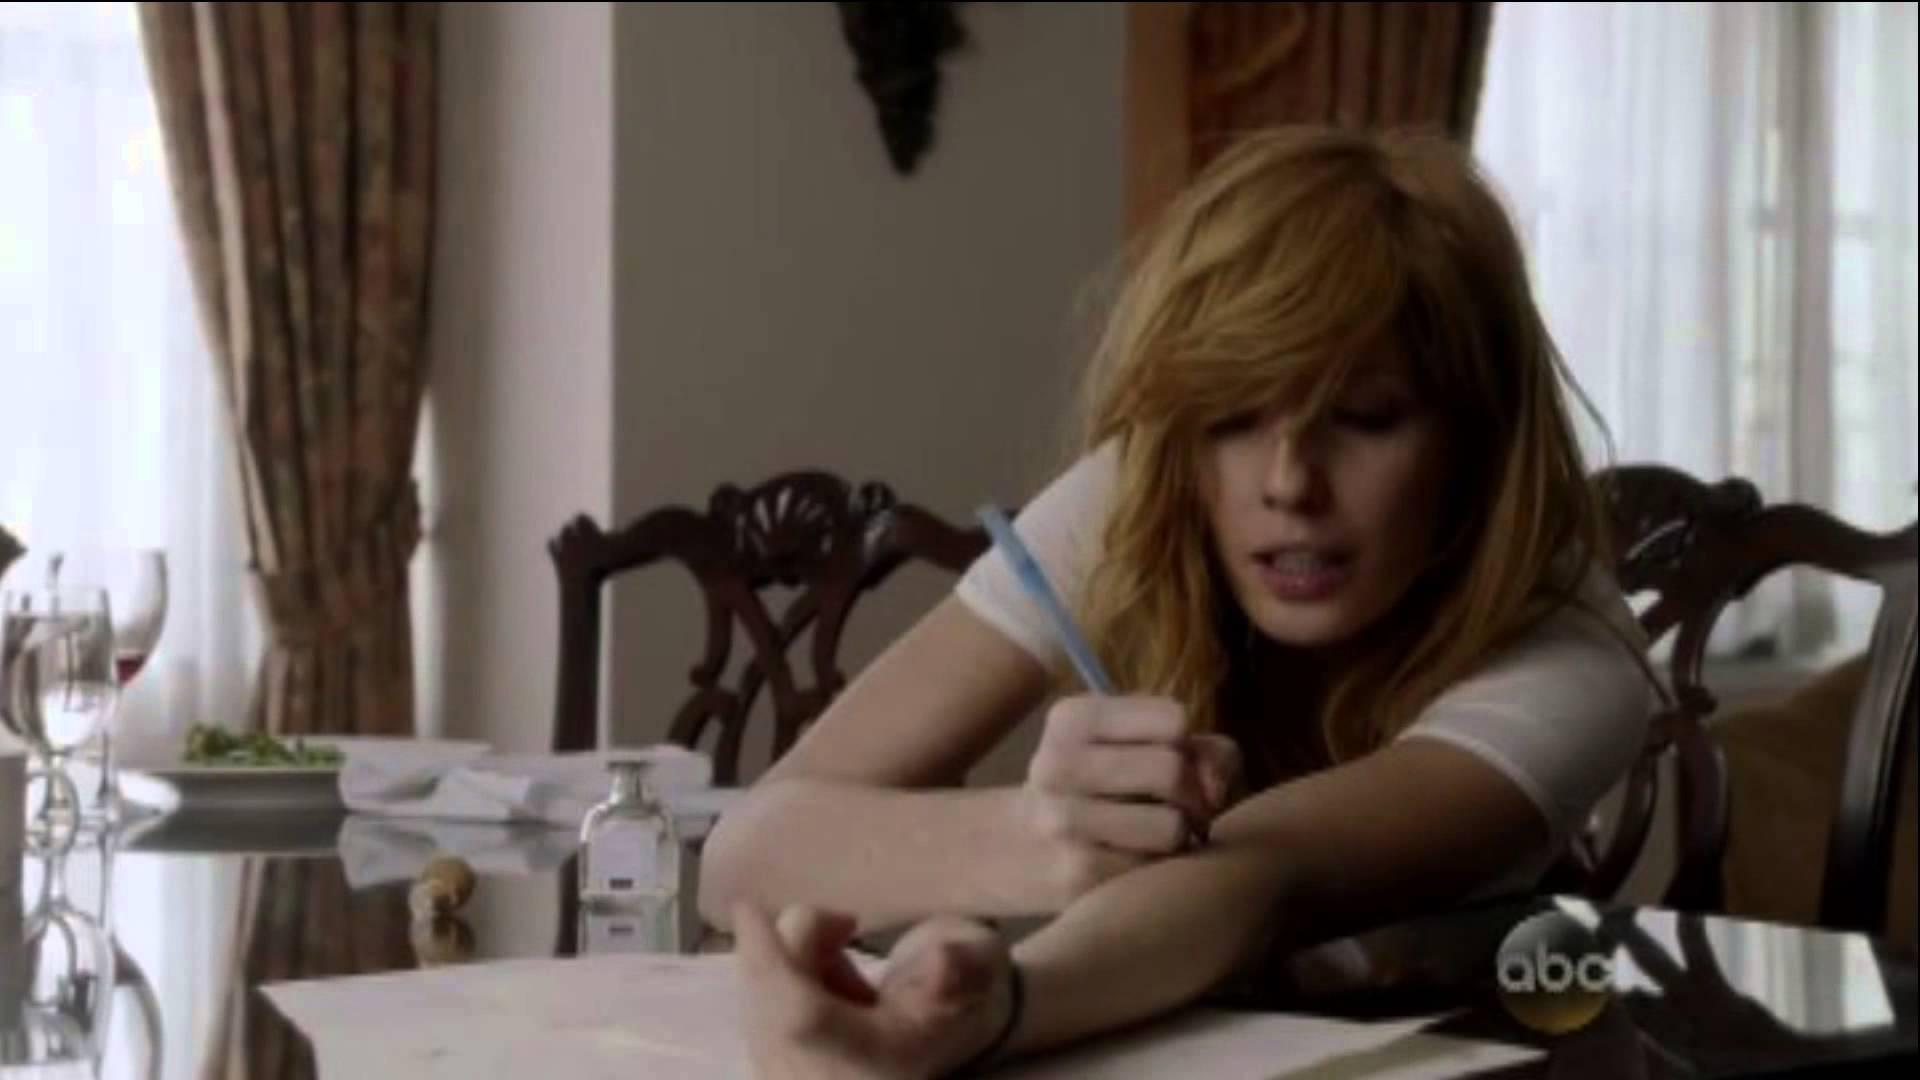 1920x1080 - Kelly Reilly Wallpapers 26